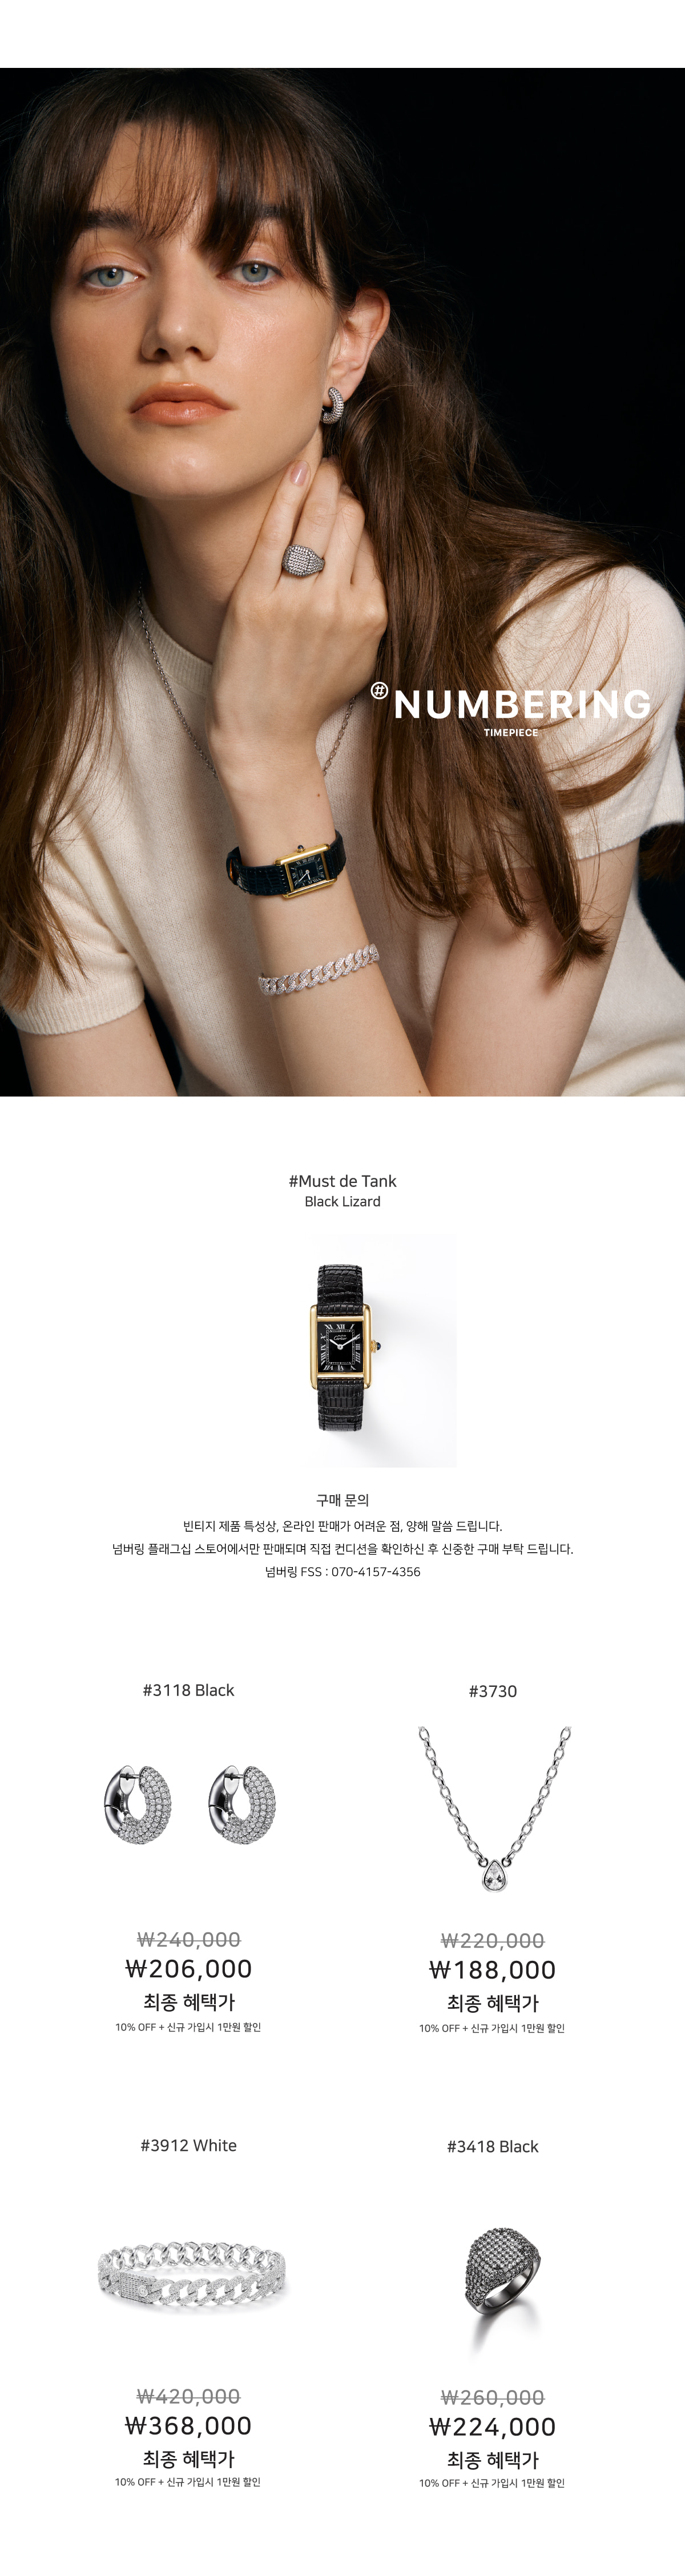 NMBR timepiece launch 3114 white